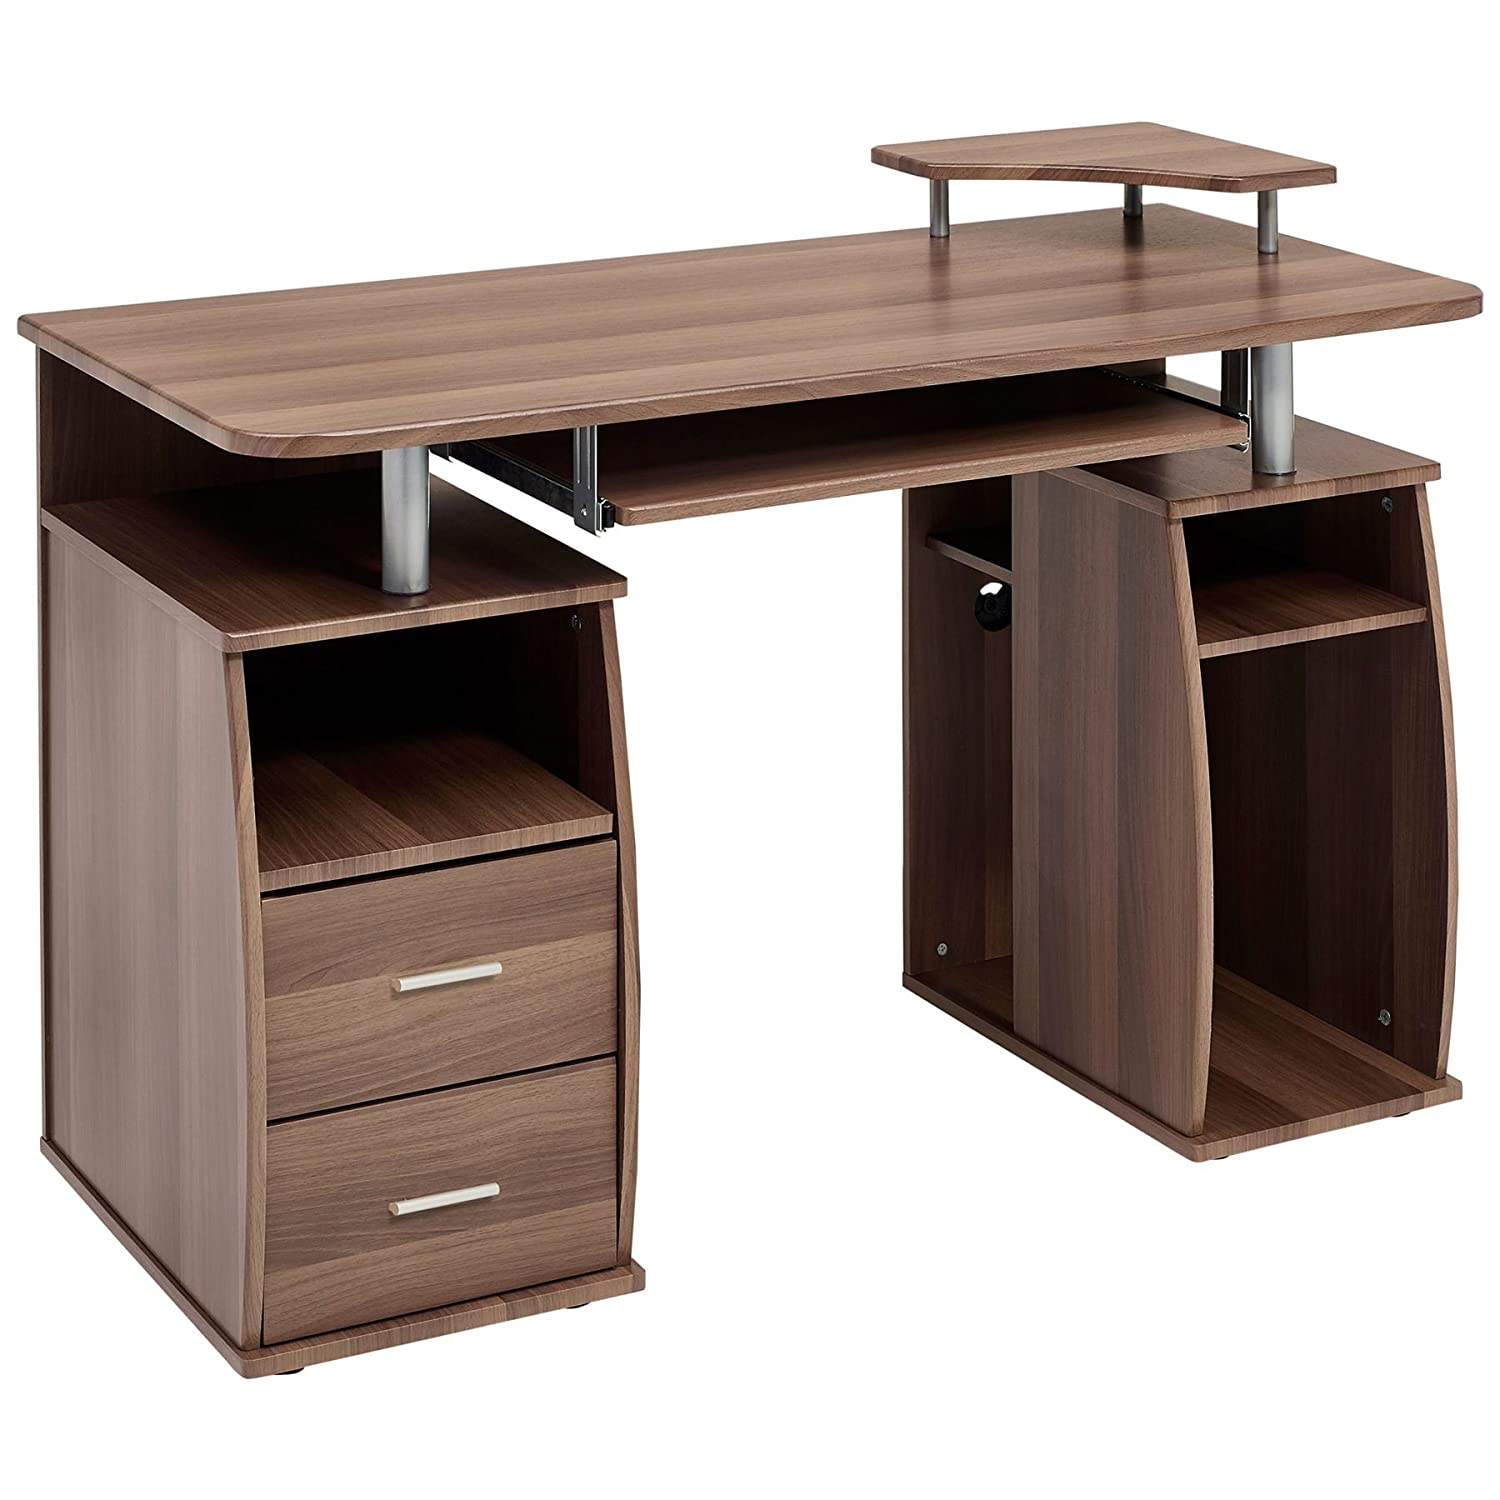 furniture antiqued brick table office hutch computer the desks with view corner harbor paint home search desk